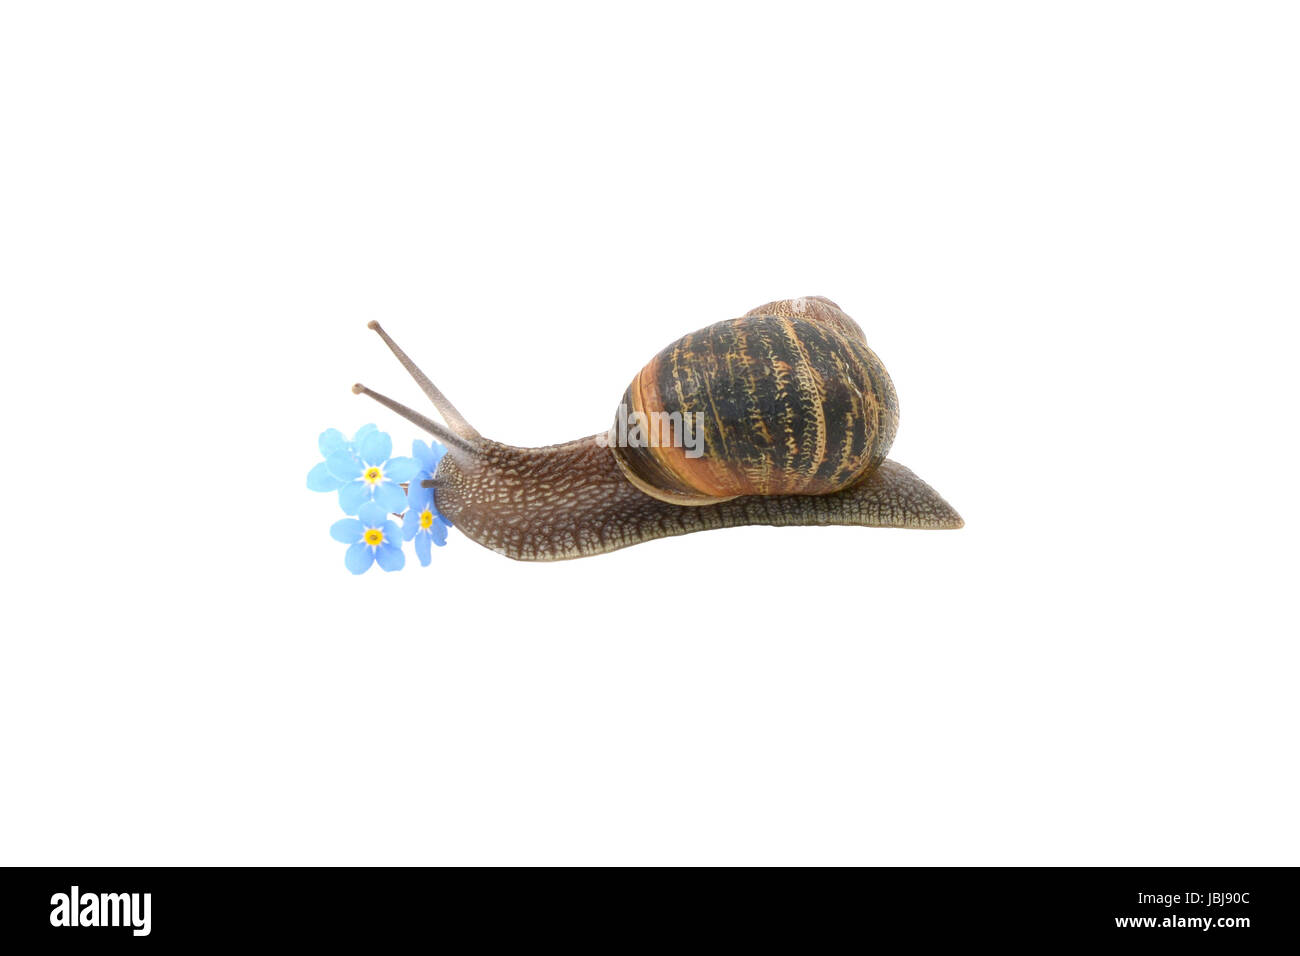 Garden snail exploring blue forget-me-not flowers, isolated on a white background - Stock Image